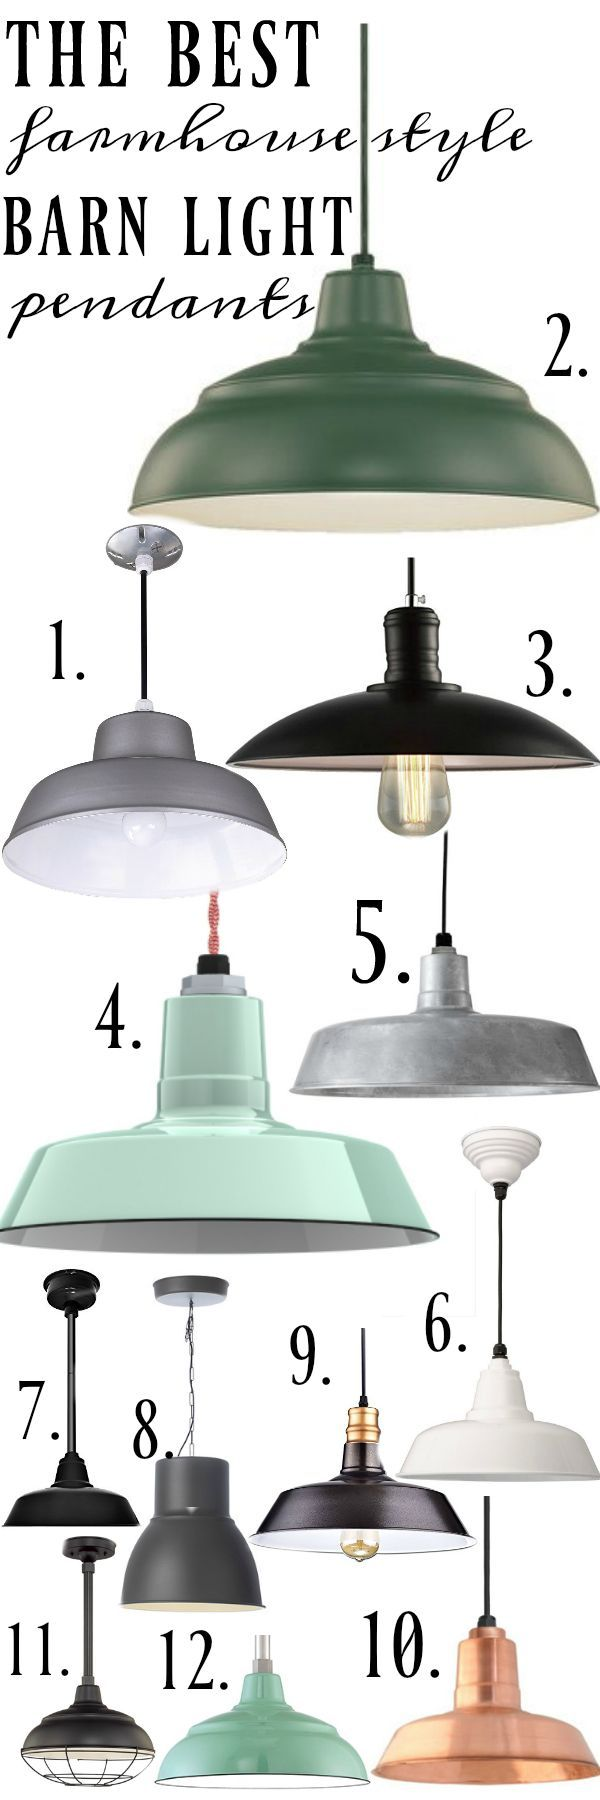 The best farmhouse style barn light pendants - The best barn light pendants a must pin for indoor/outdoor farmhouse style/cottage style lights.